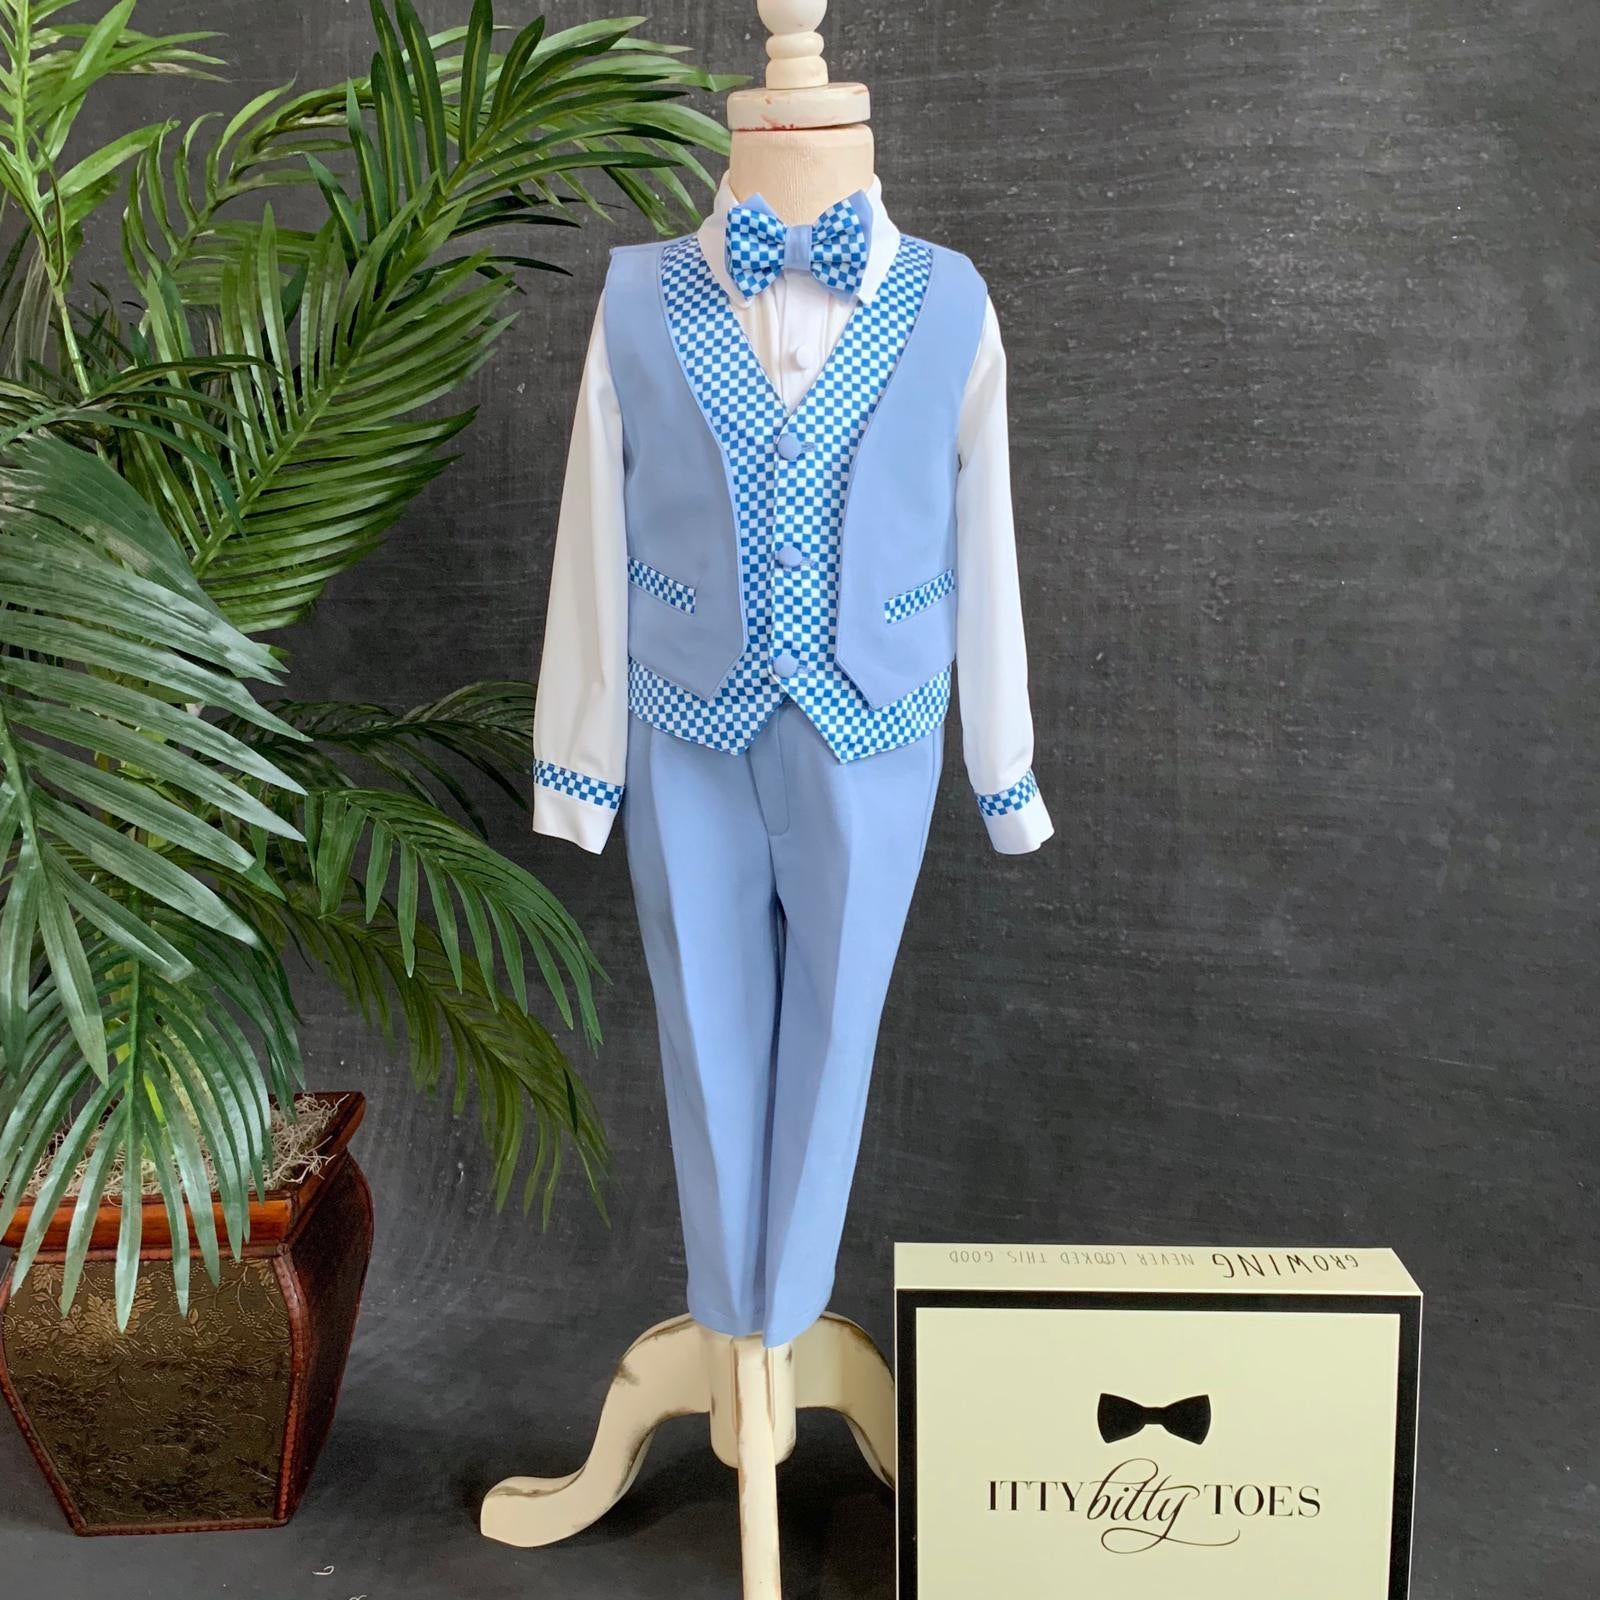 Gustavo Suit - Couture - Itty Bitty Toes